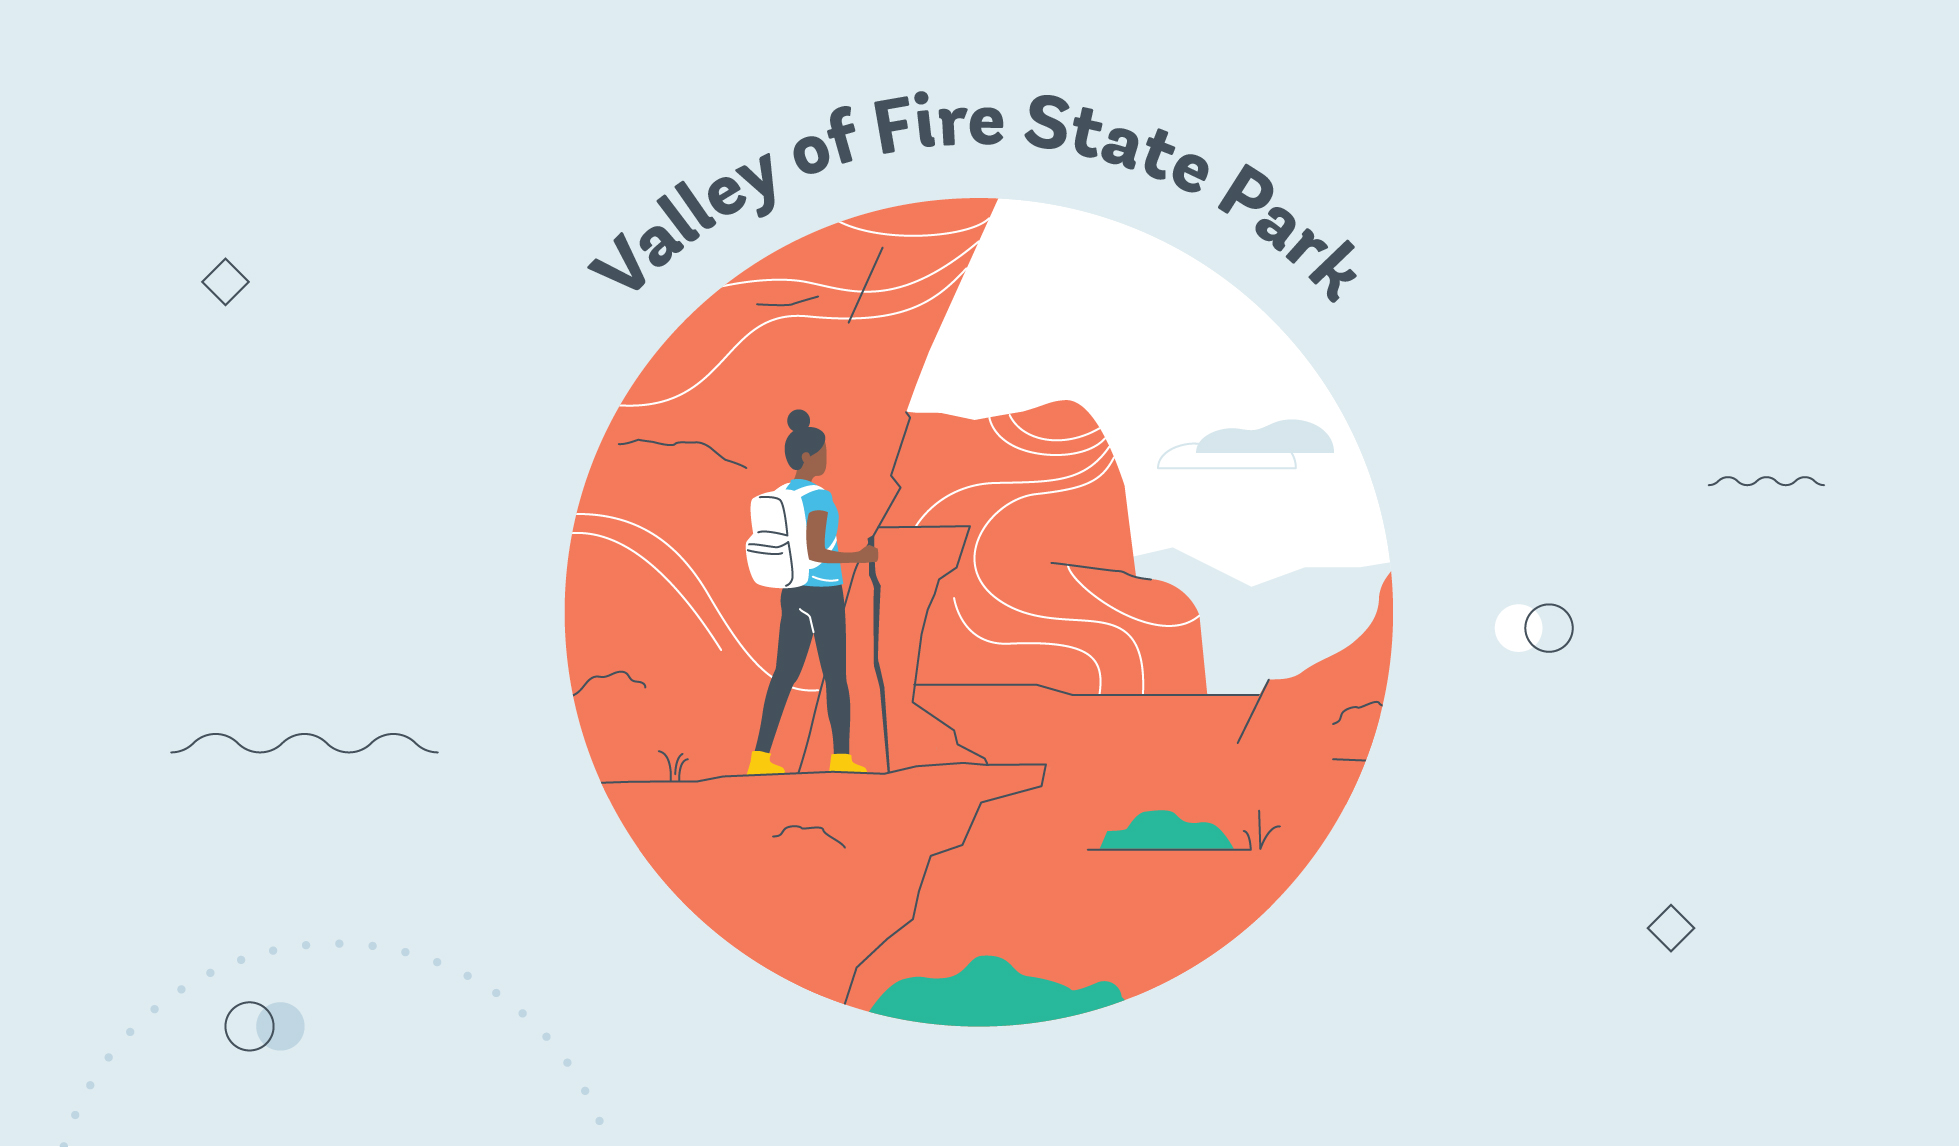 Valley of Fire State Park graphic